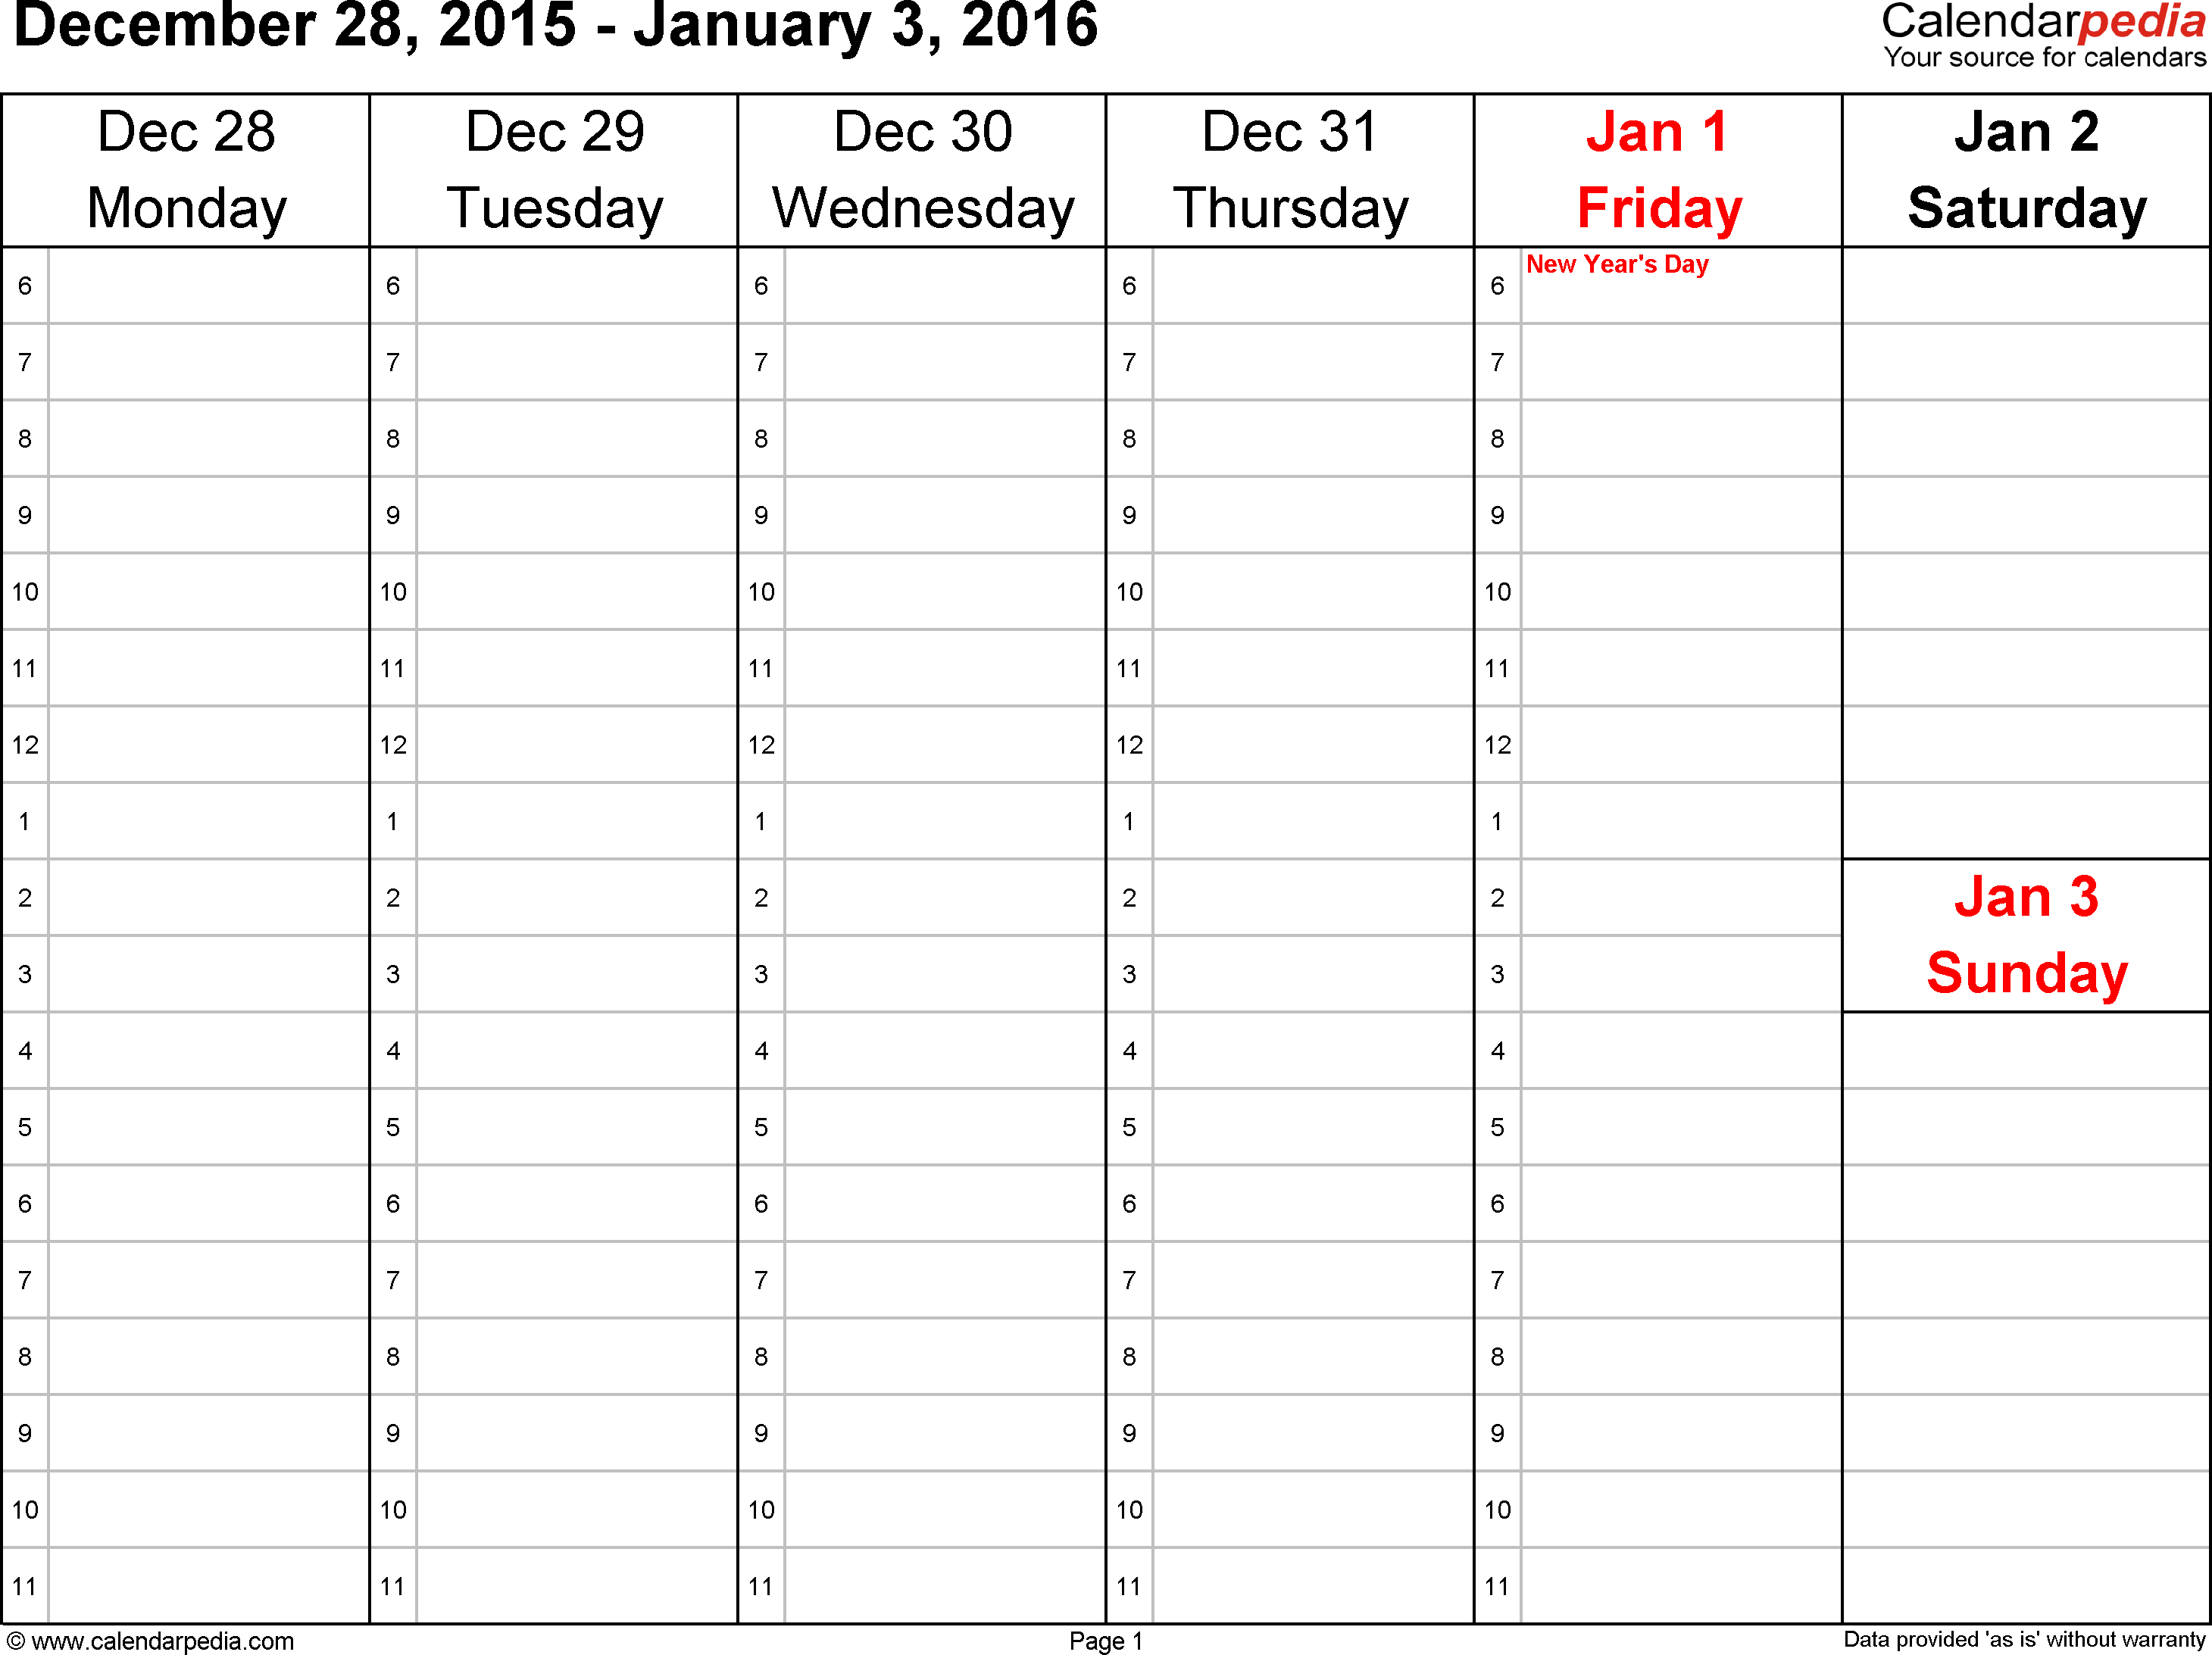 Weekly calendar 2016: template for PDF version 4, landscape, 53 pages, Saturday & Sunday share one column